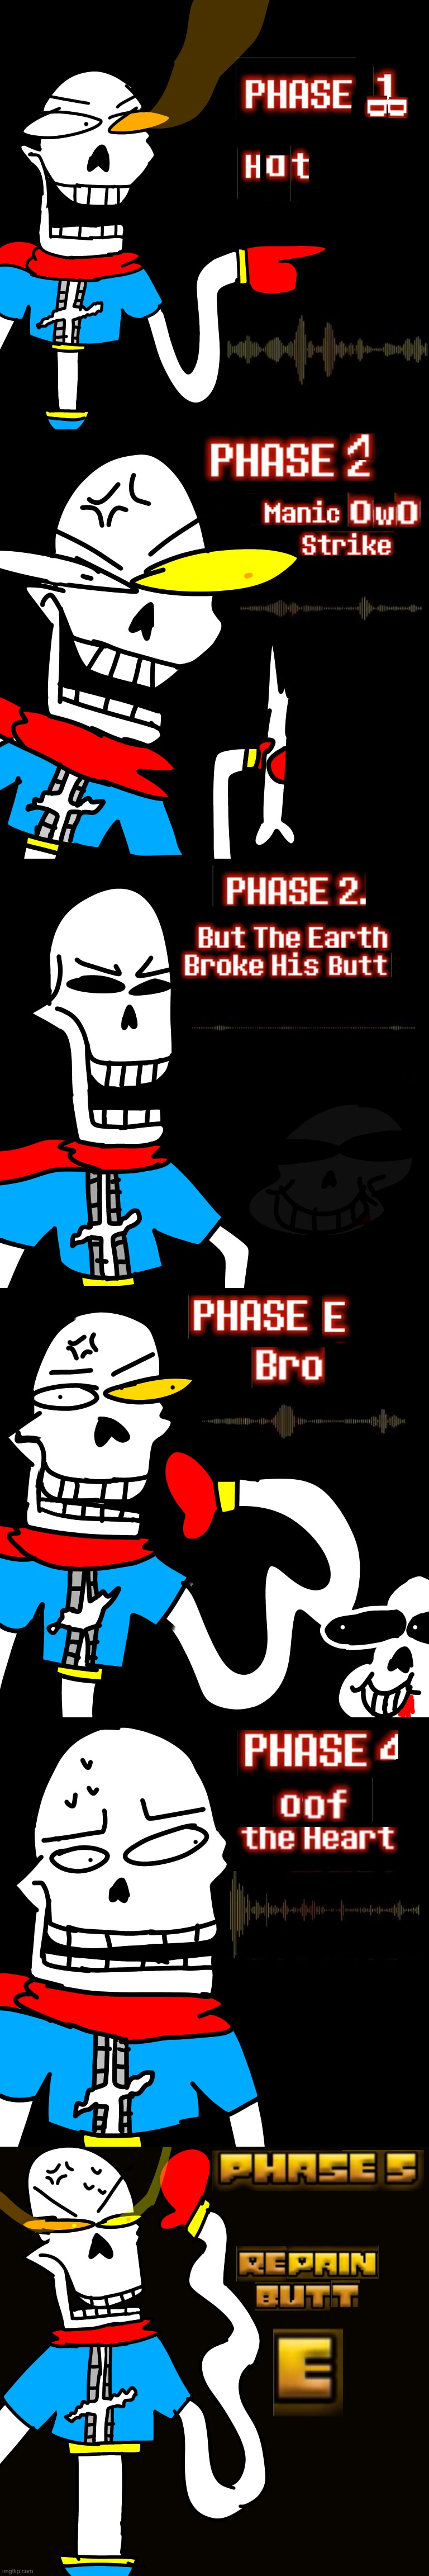 Disbe-leave Poopyrus: Mode Hard all phases (1-5) | image tagged in memes,funny,disbelief,papyrus,undertale,in a nutshell | made w/ Imgflip meme maker